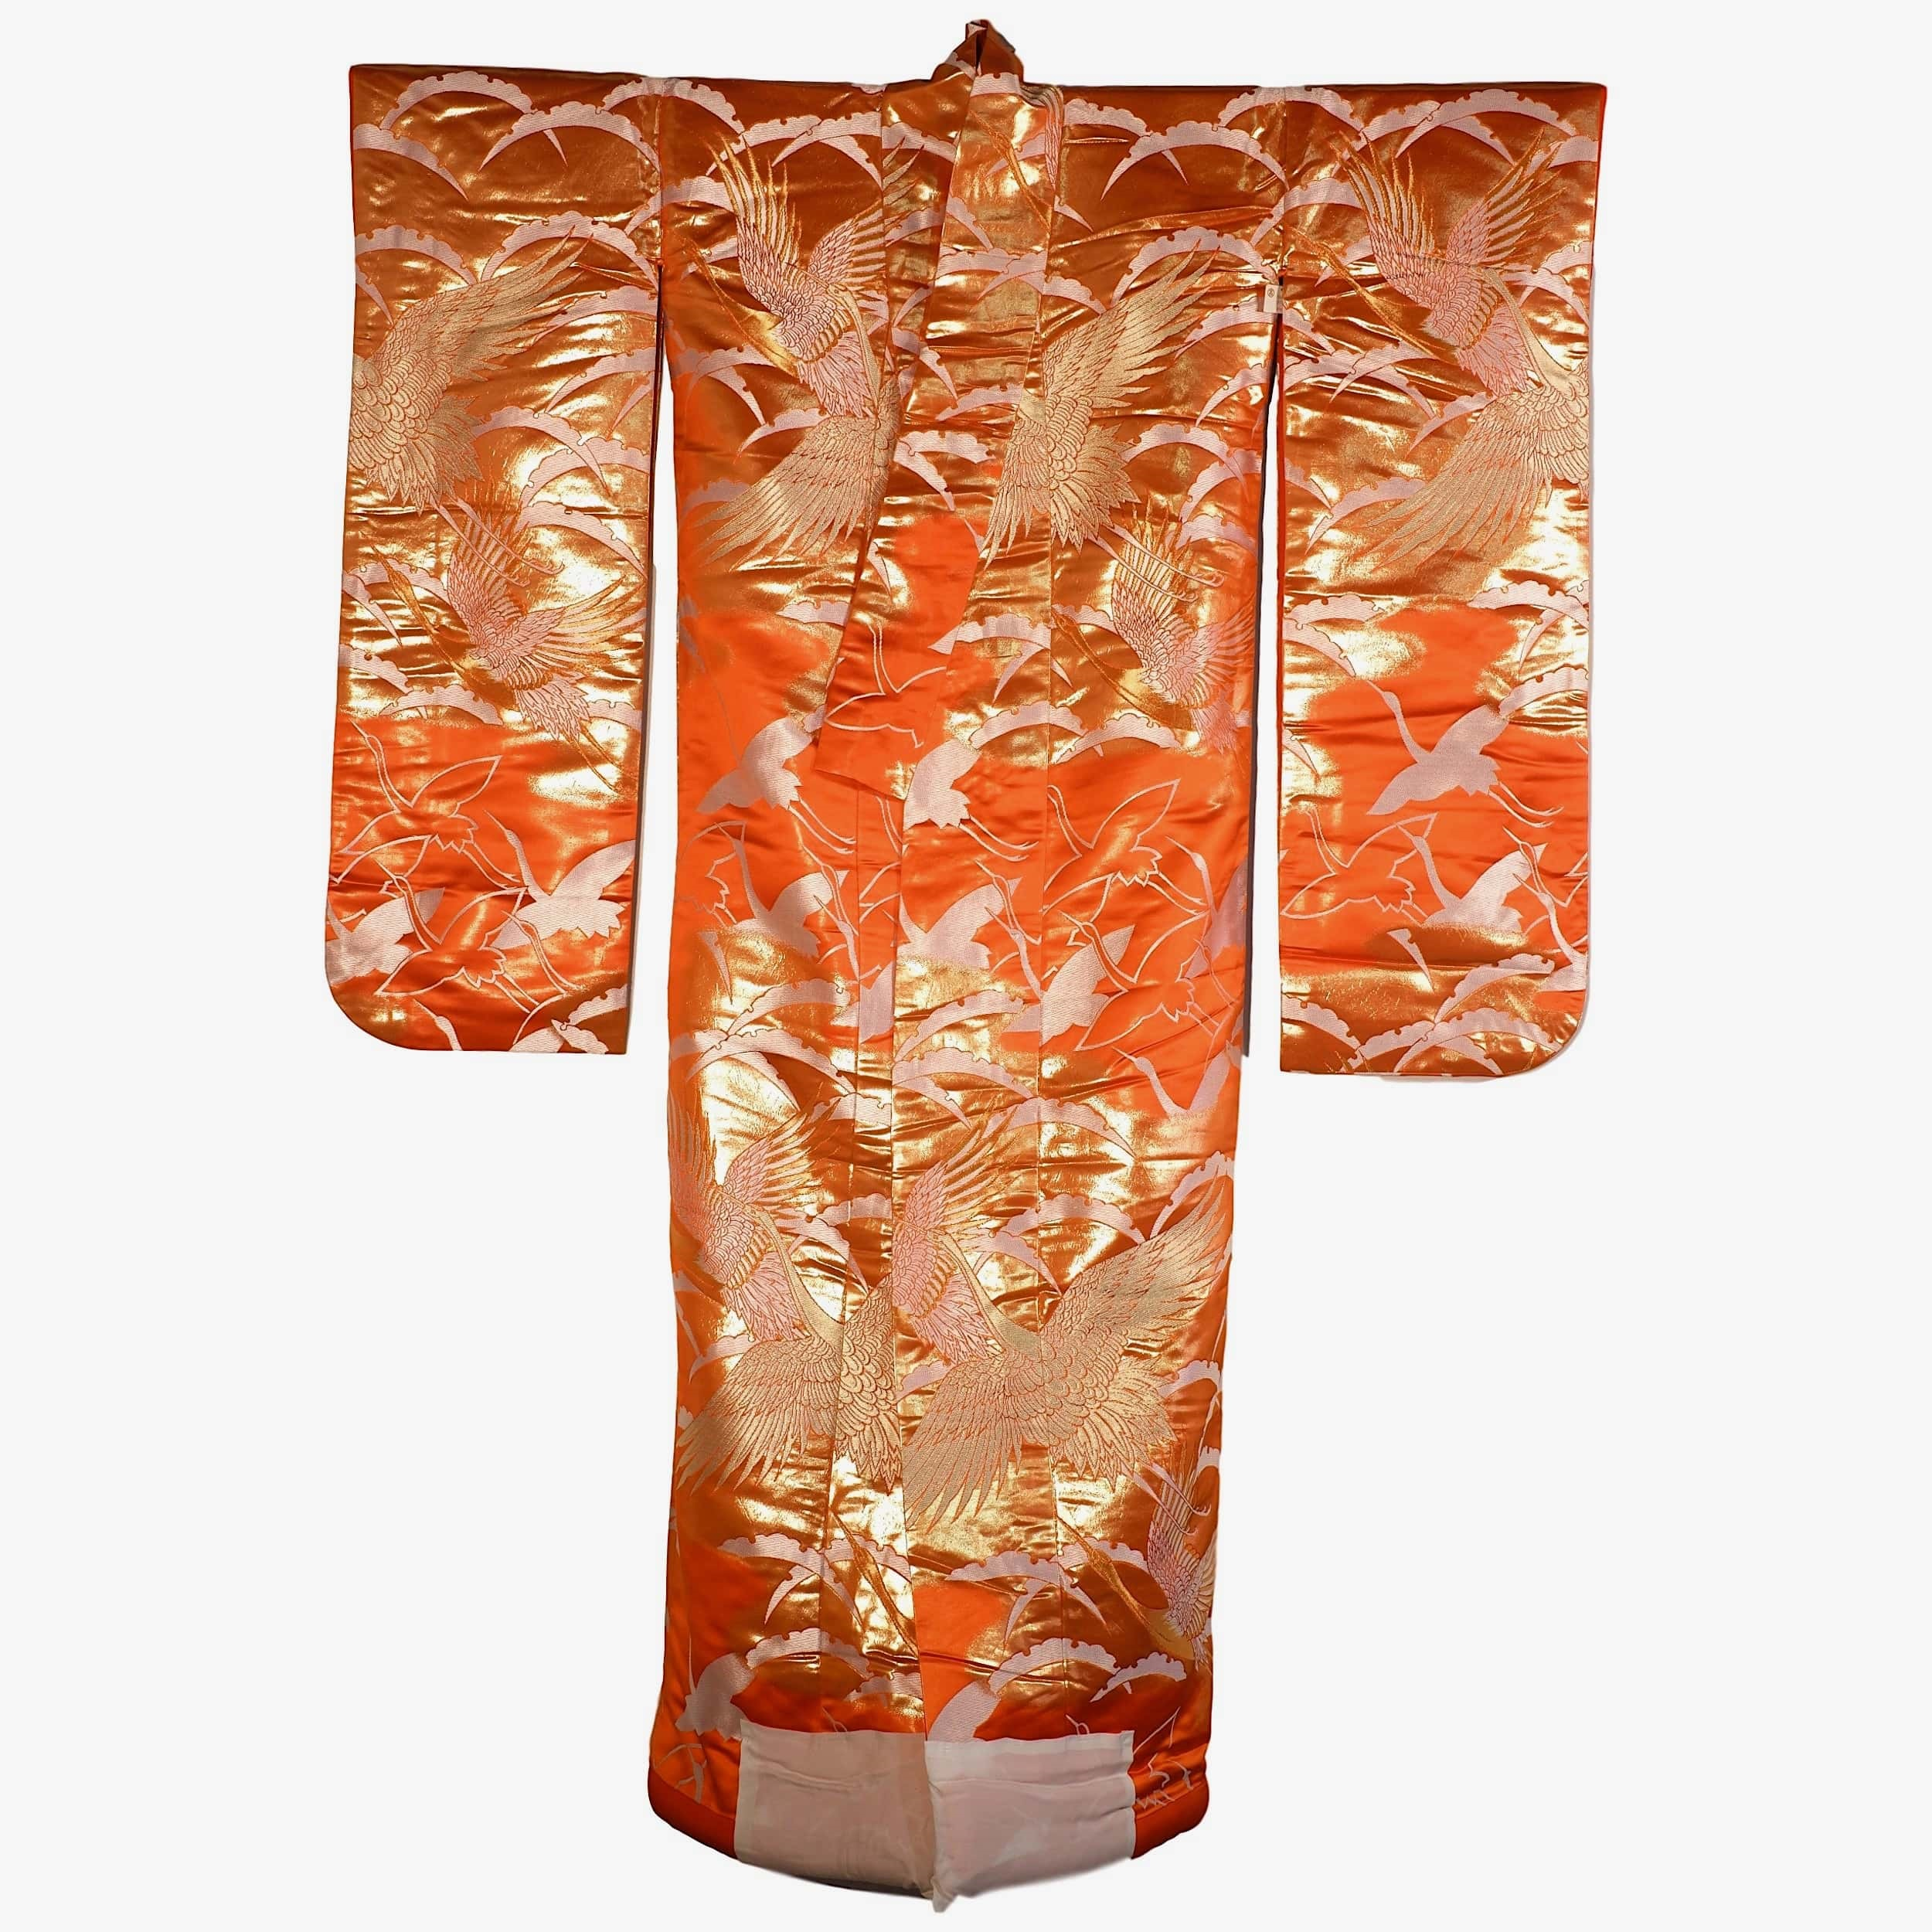 'Vintage Japanese Wedding Kimono Orange Satin Ground with Gold and Silver Metal Thread Brocade'